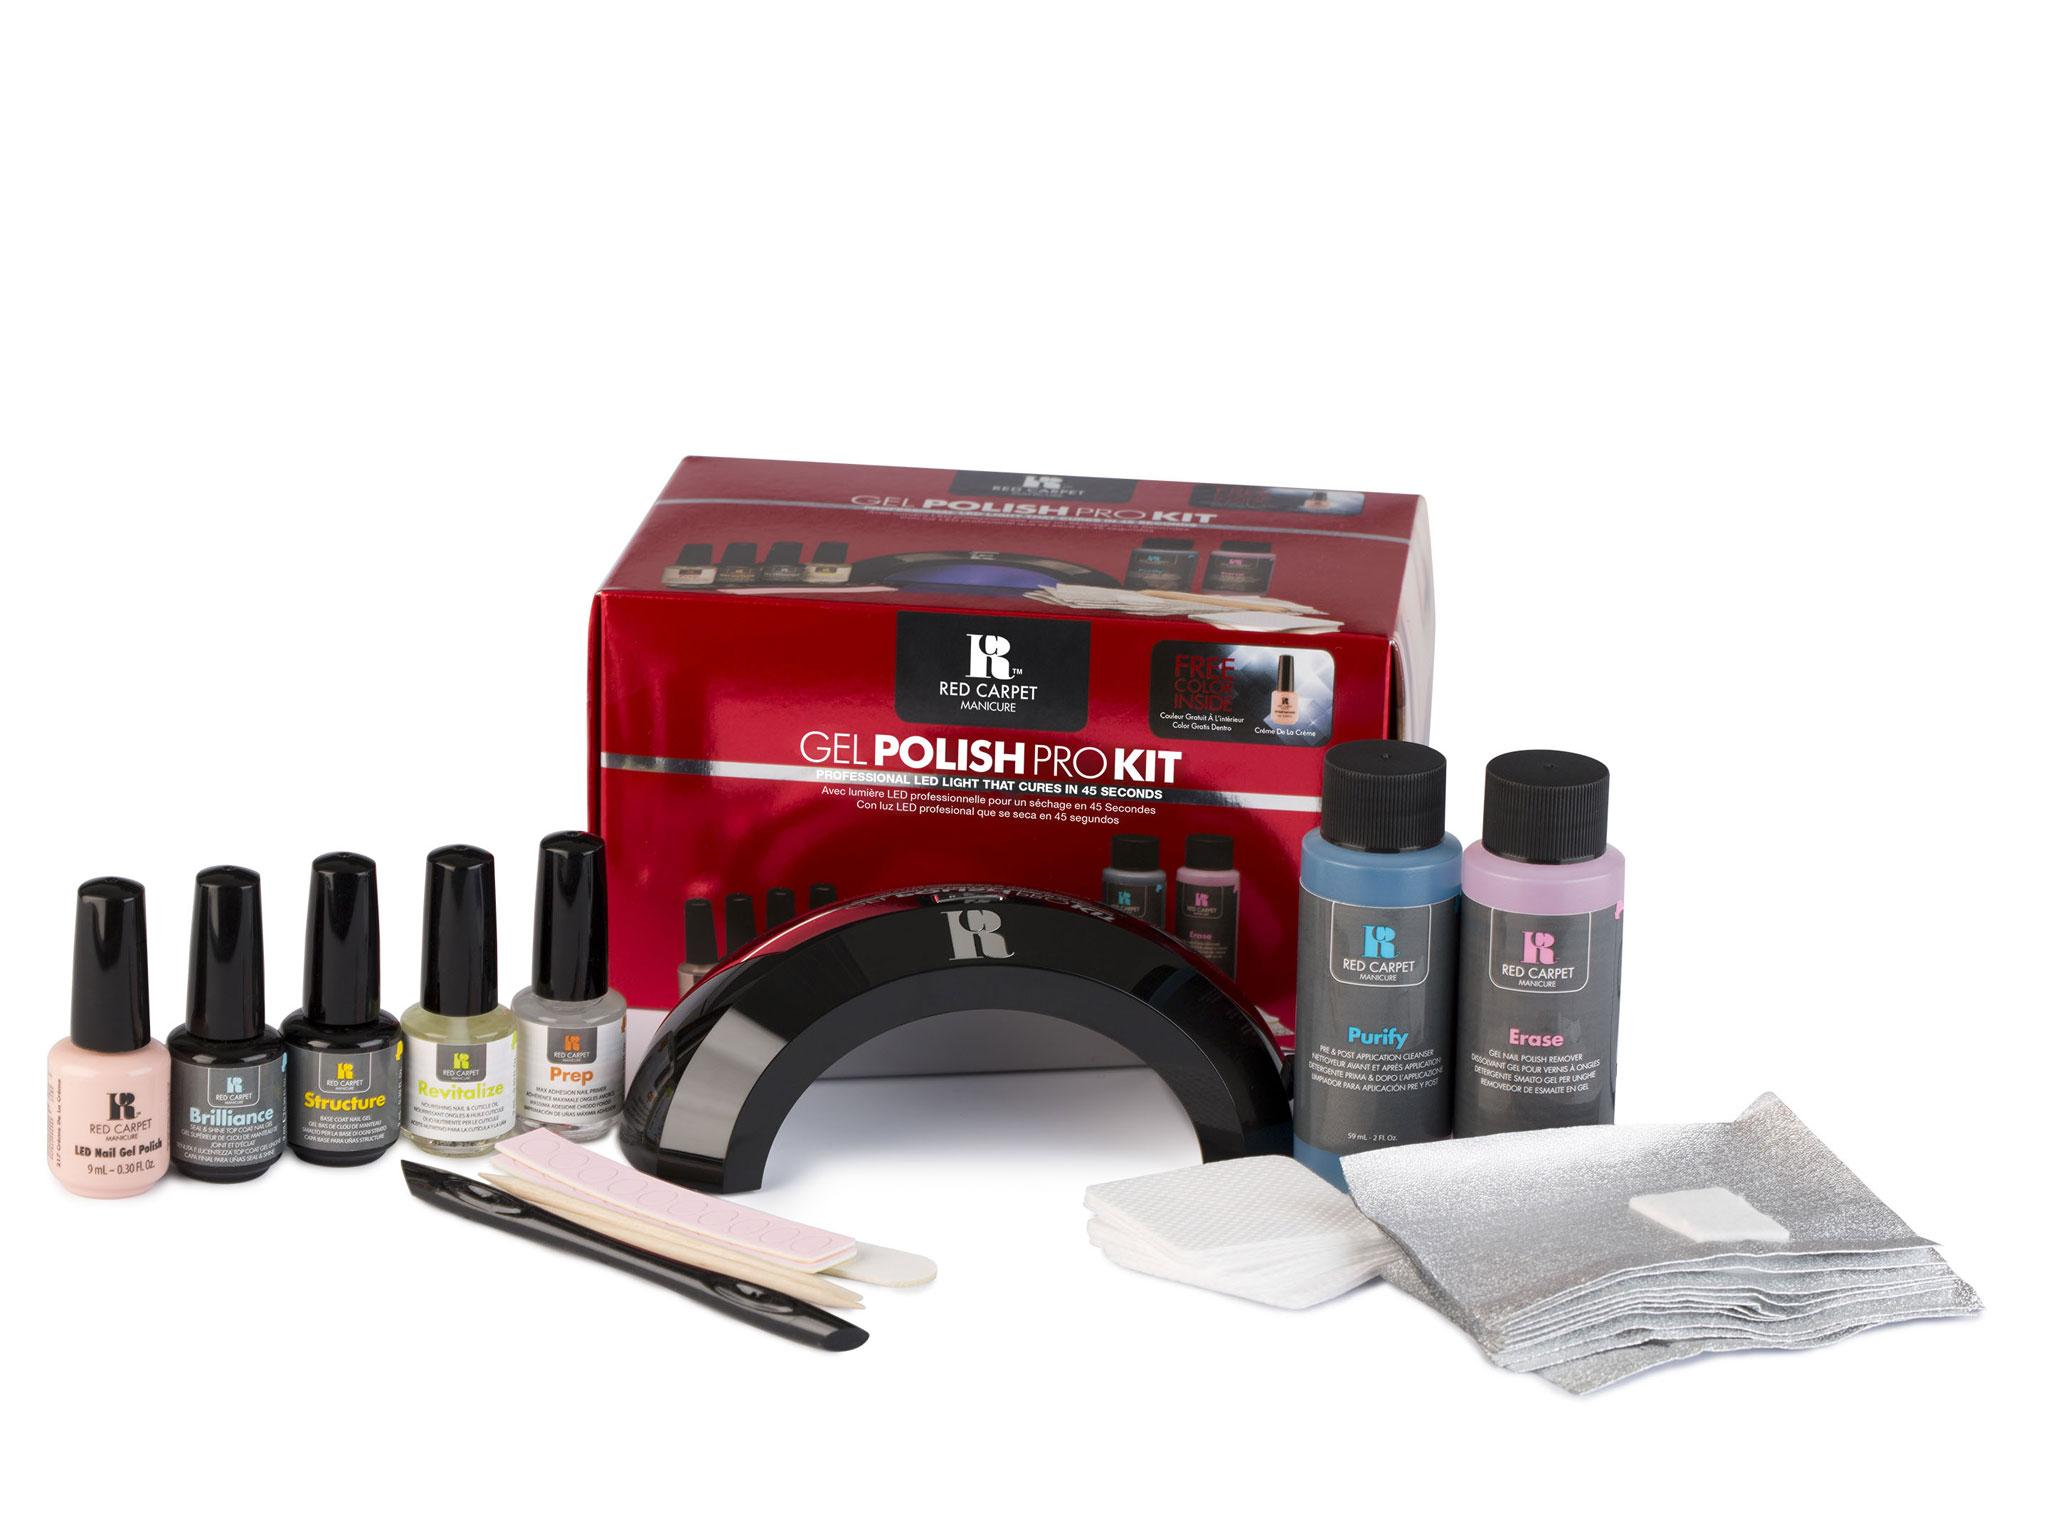 5 best home gel nail kits the independent cited solutioingenieria Image collections